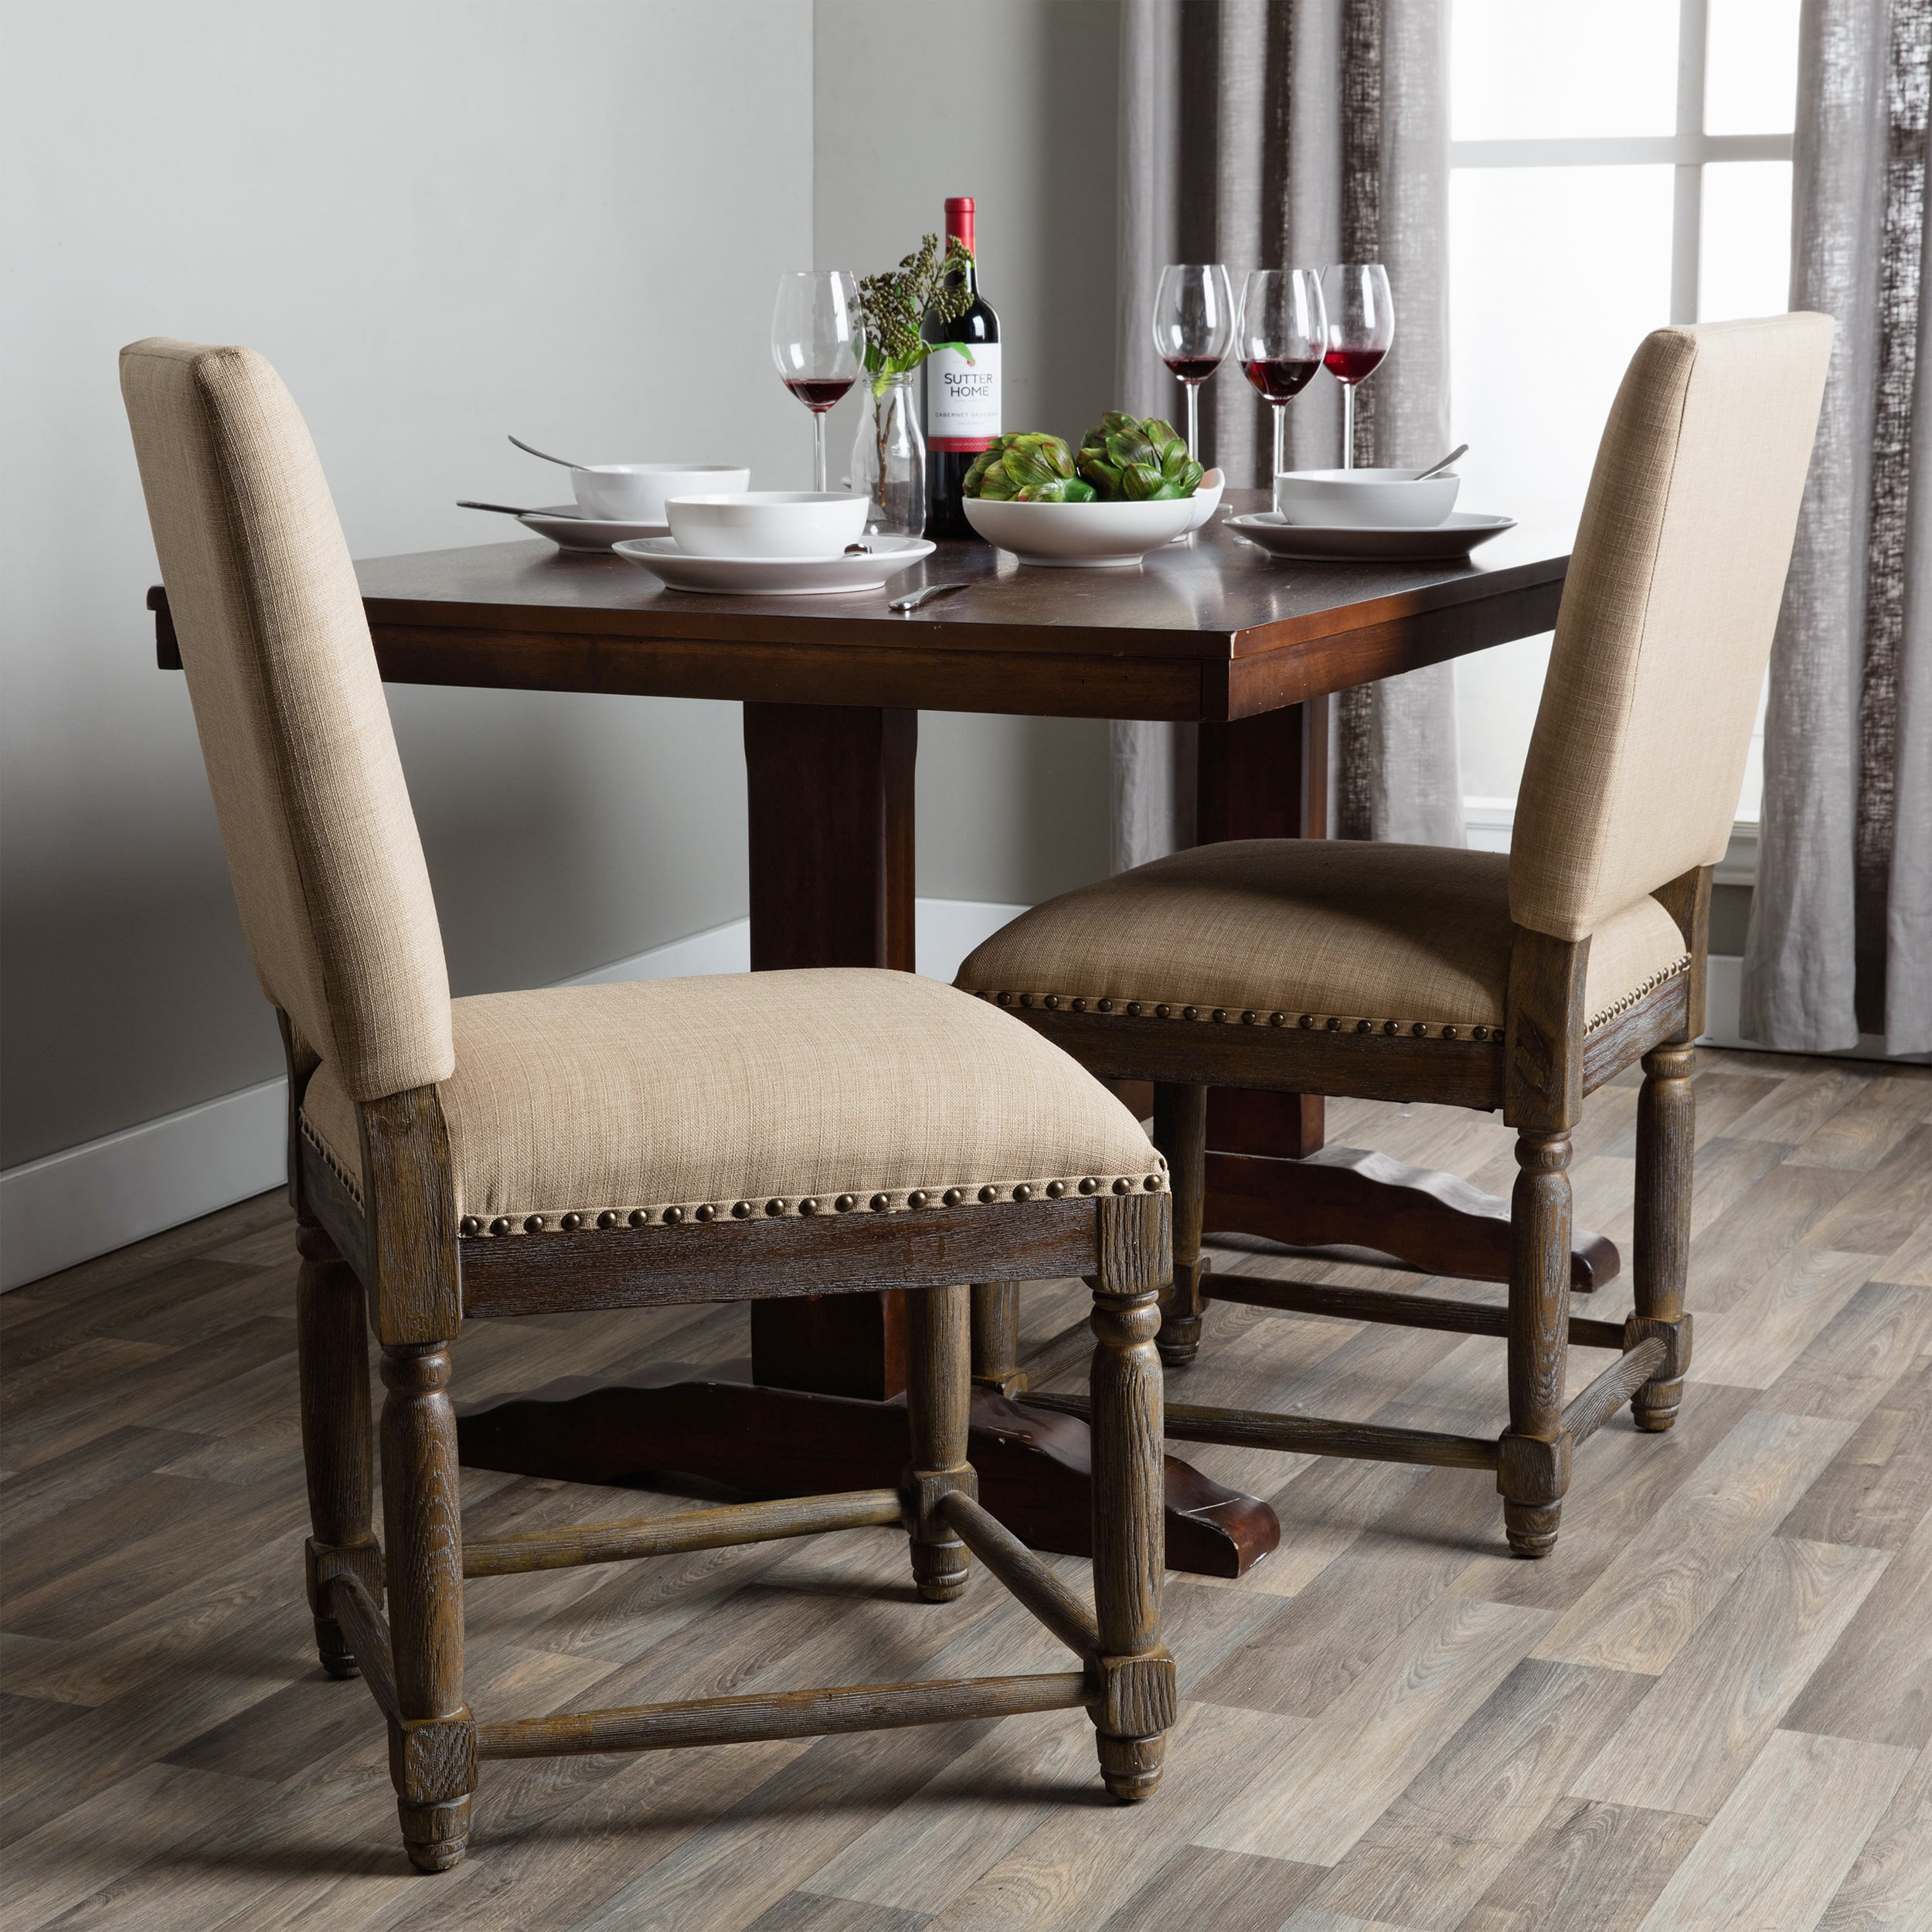 linen dining chairs natural renate linen dining chairs set of 2 walmartcom